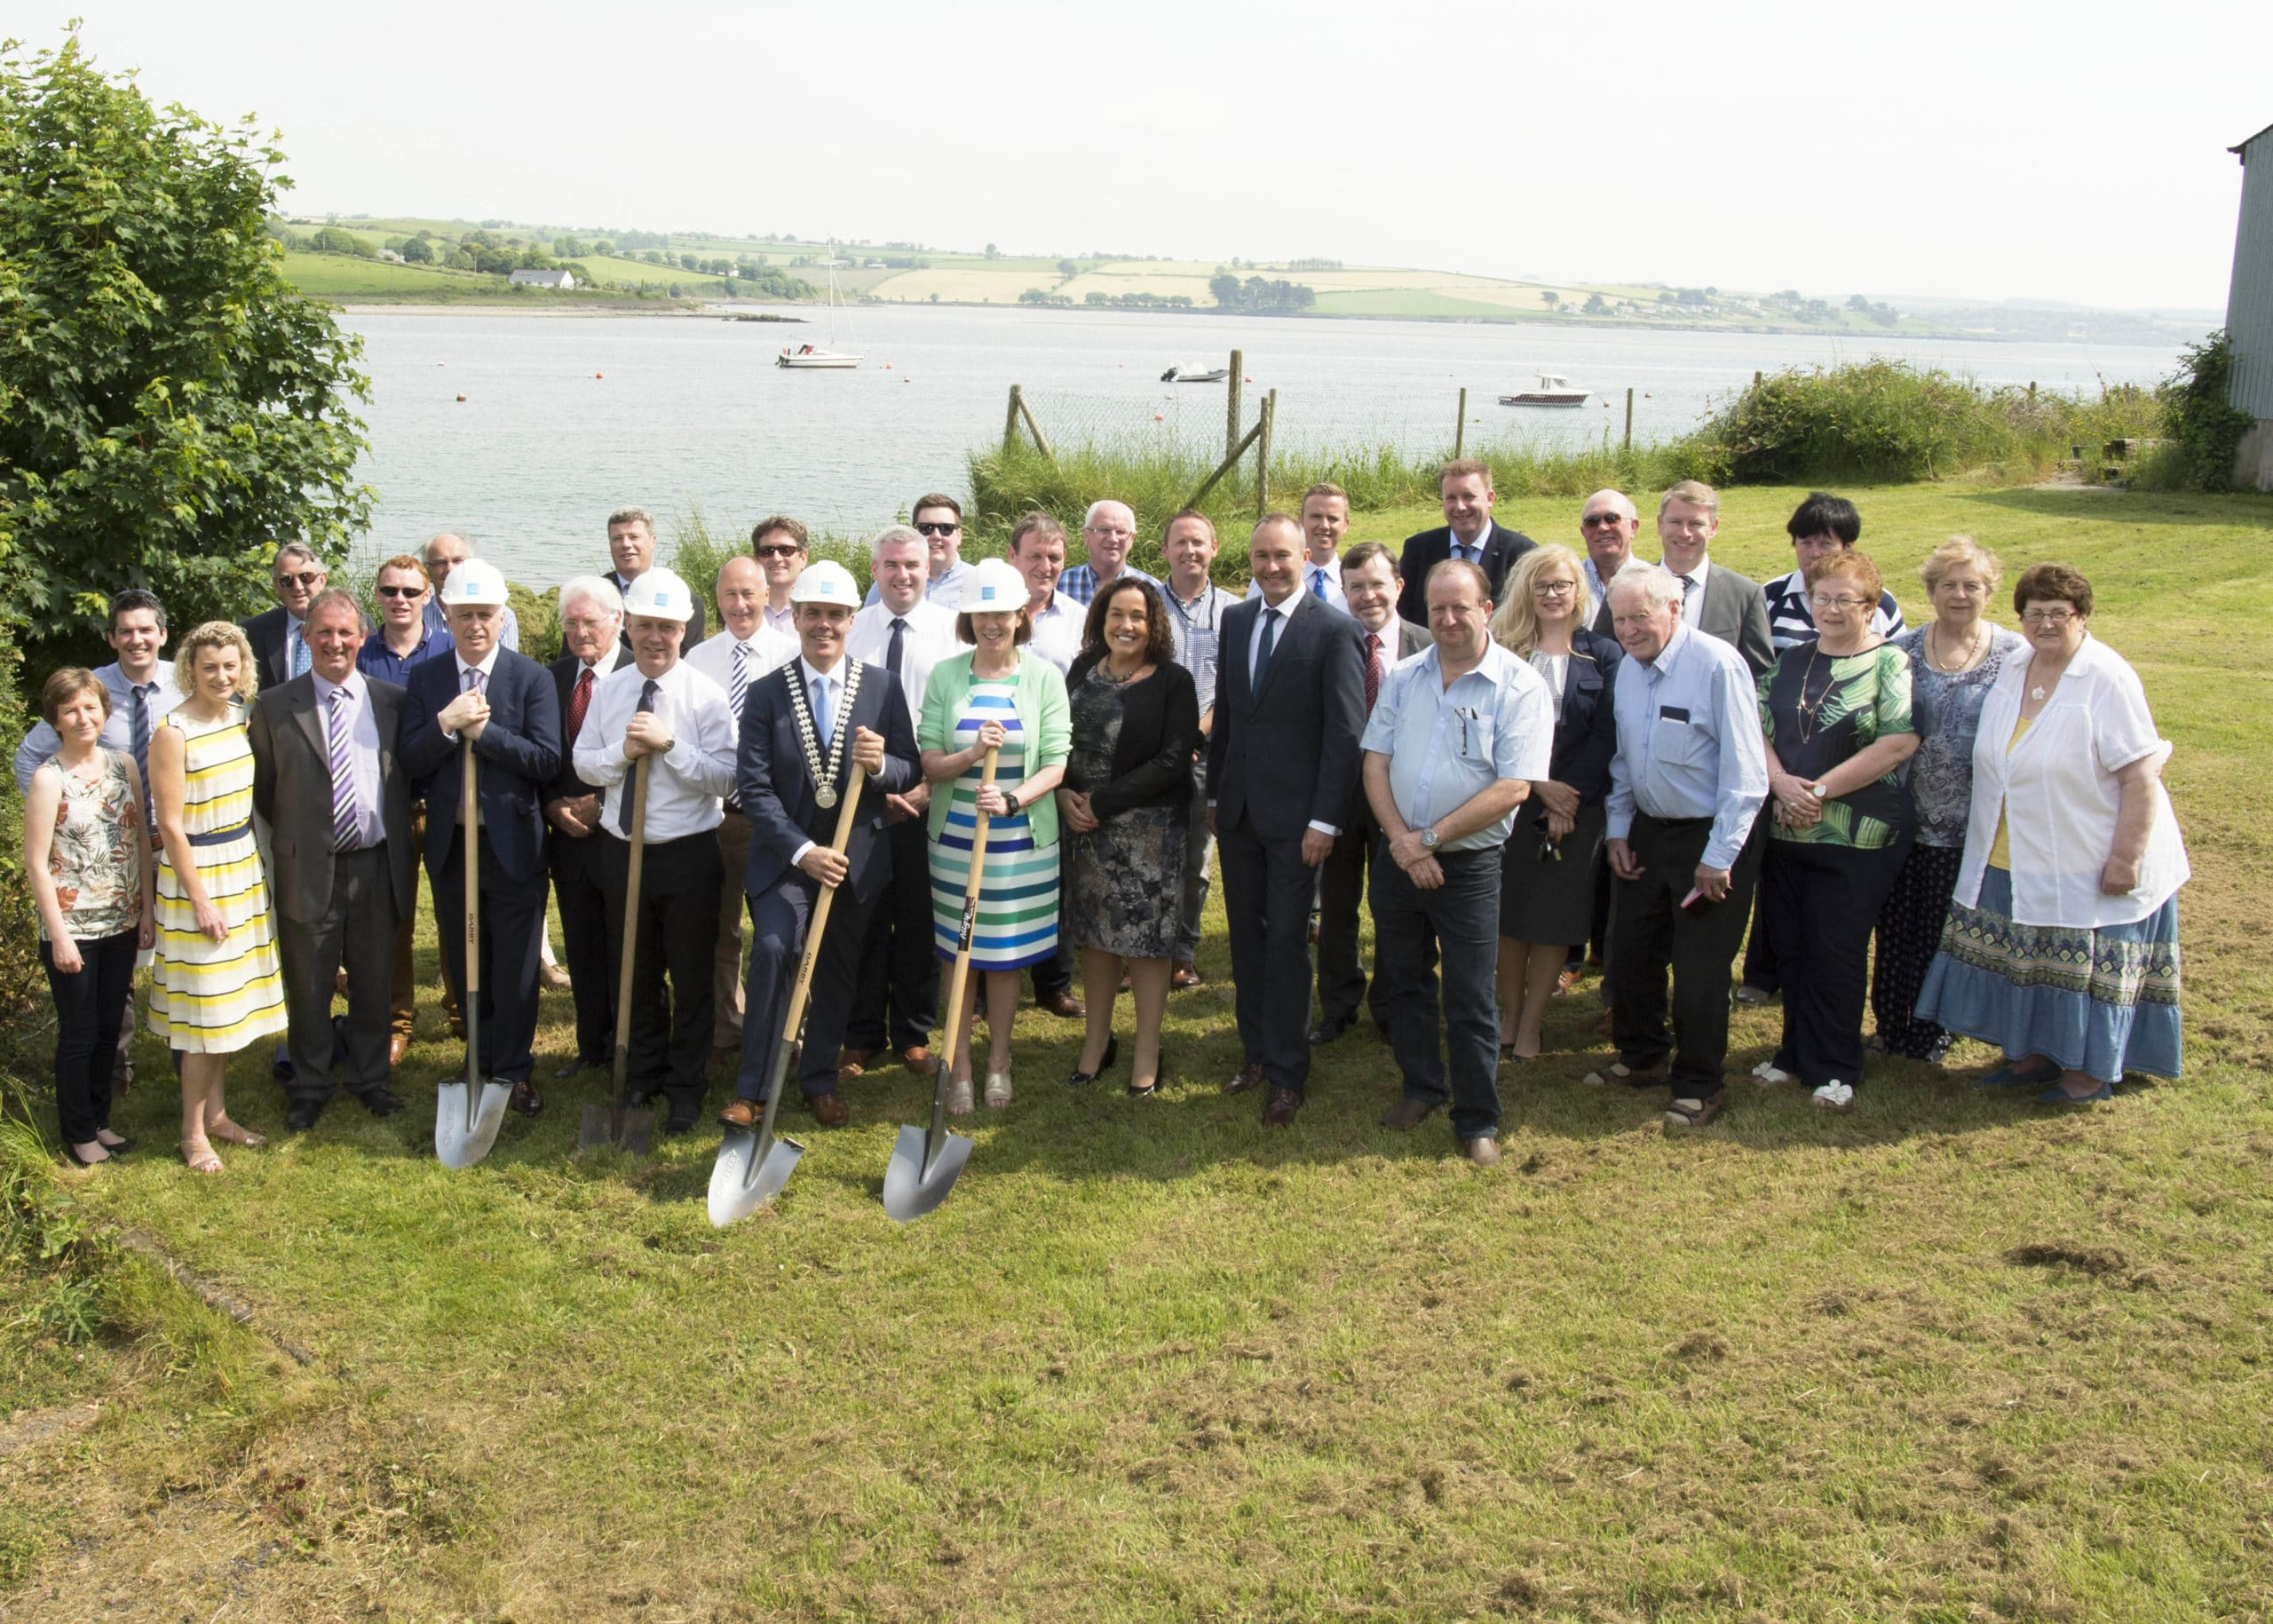 Completion of new Courtmacsherry-Timoleague Sewerage scheme will bring extensive benefits to local community